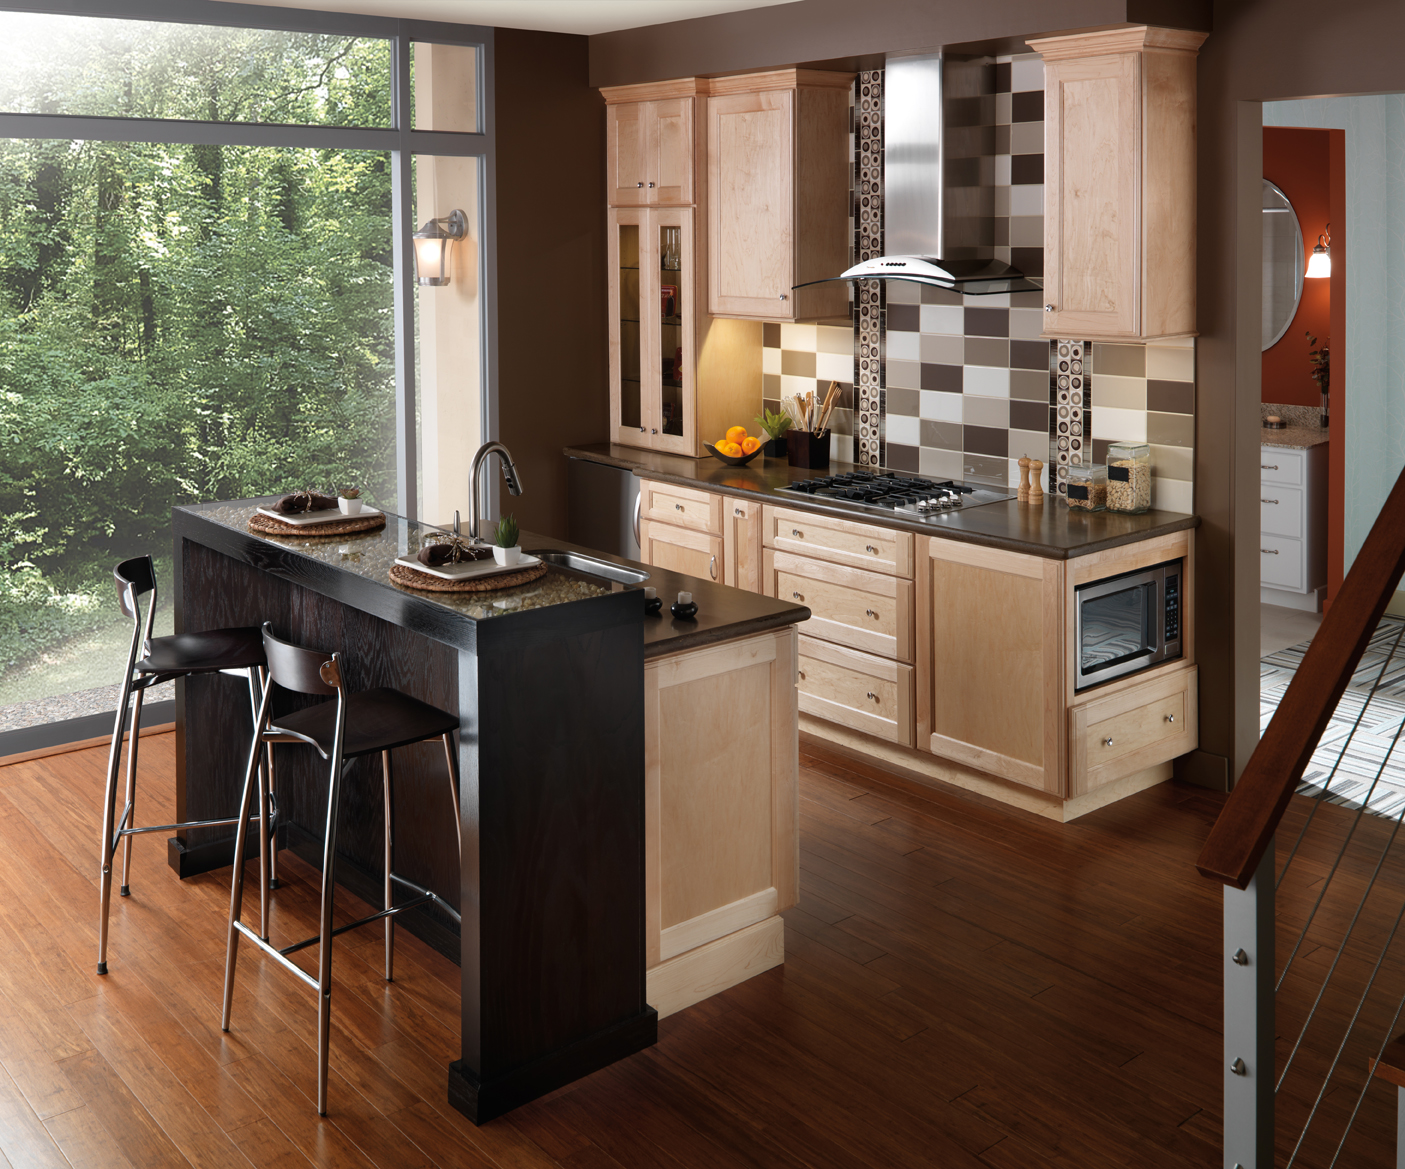 Quality Kitchen Cabinets Quality Cabinets Seacrest Birch Clove